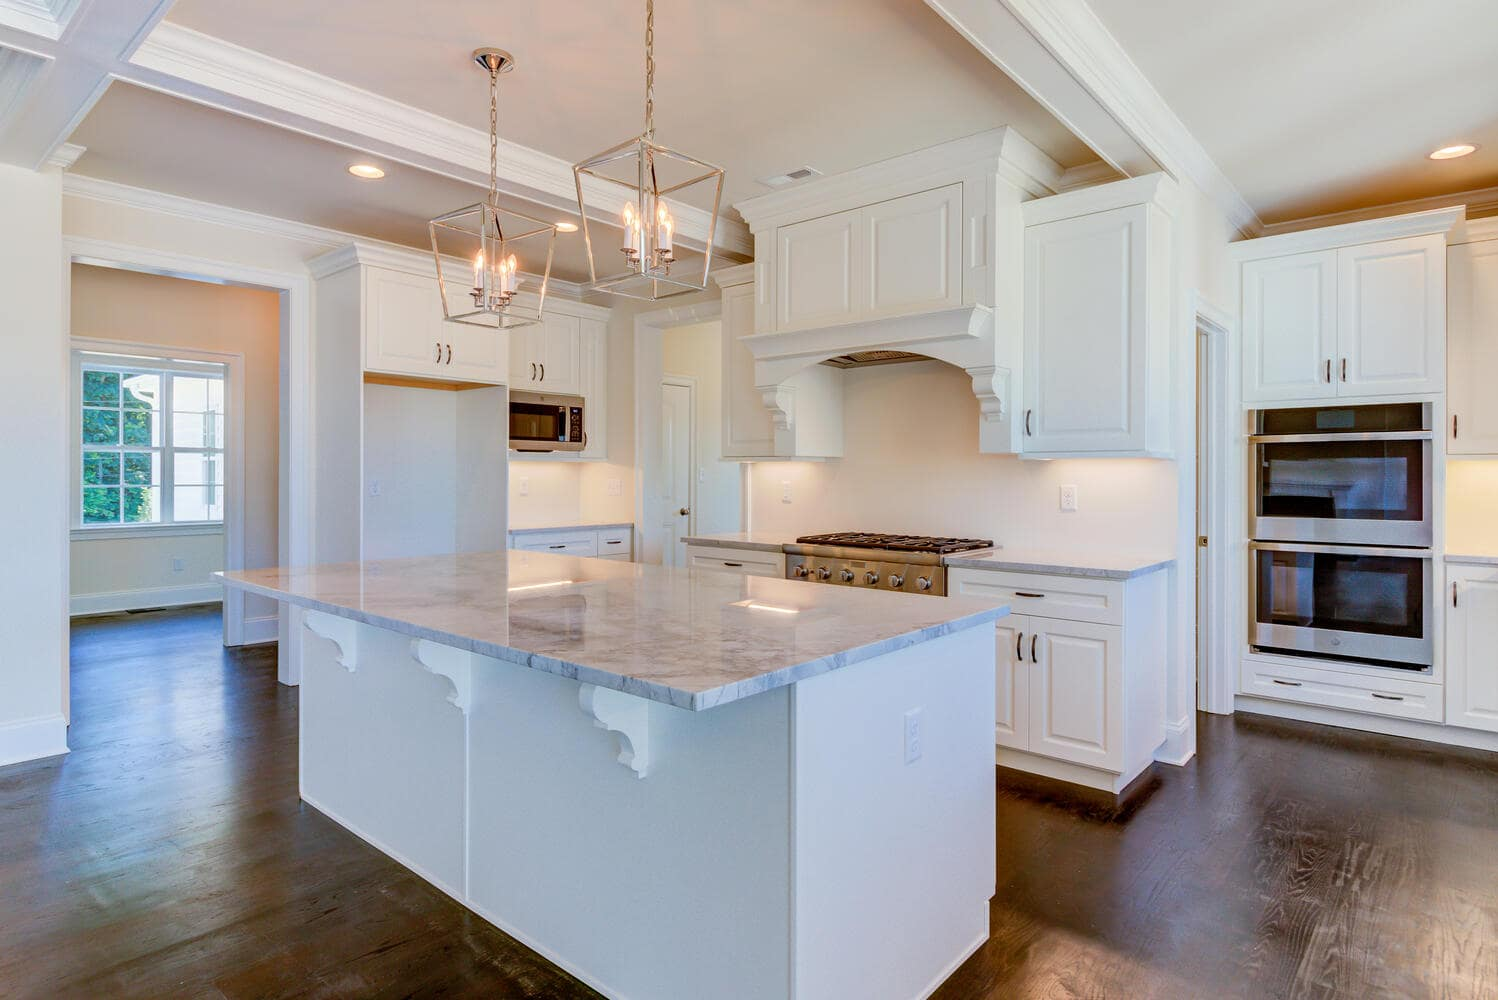 Kitchen in a new home from Bentley Homes.